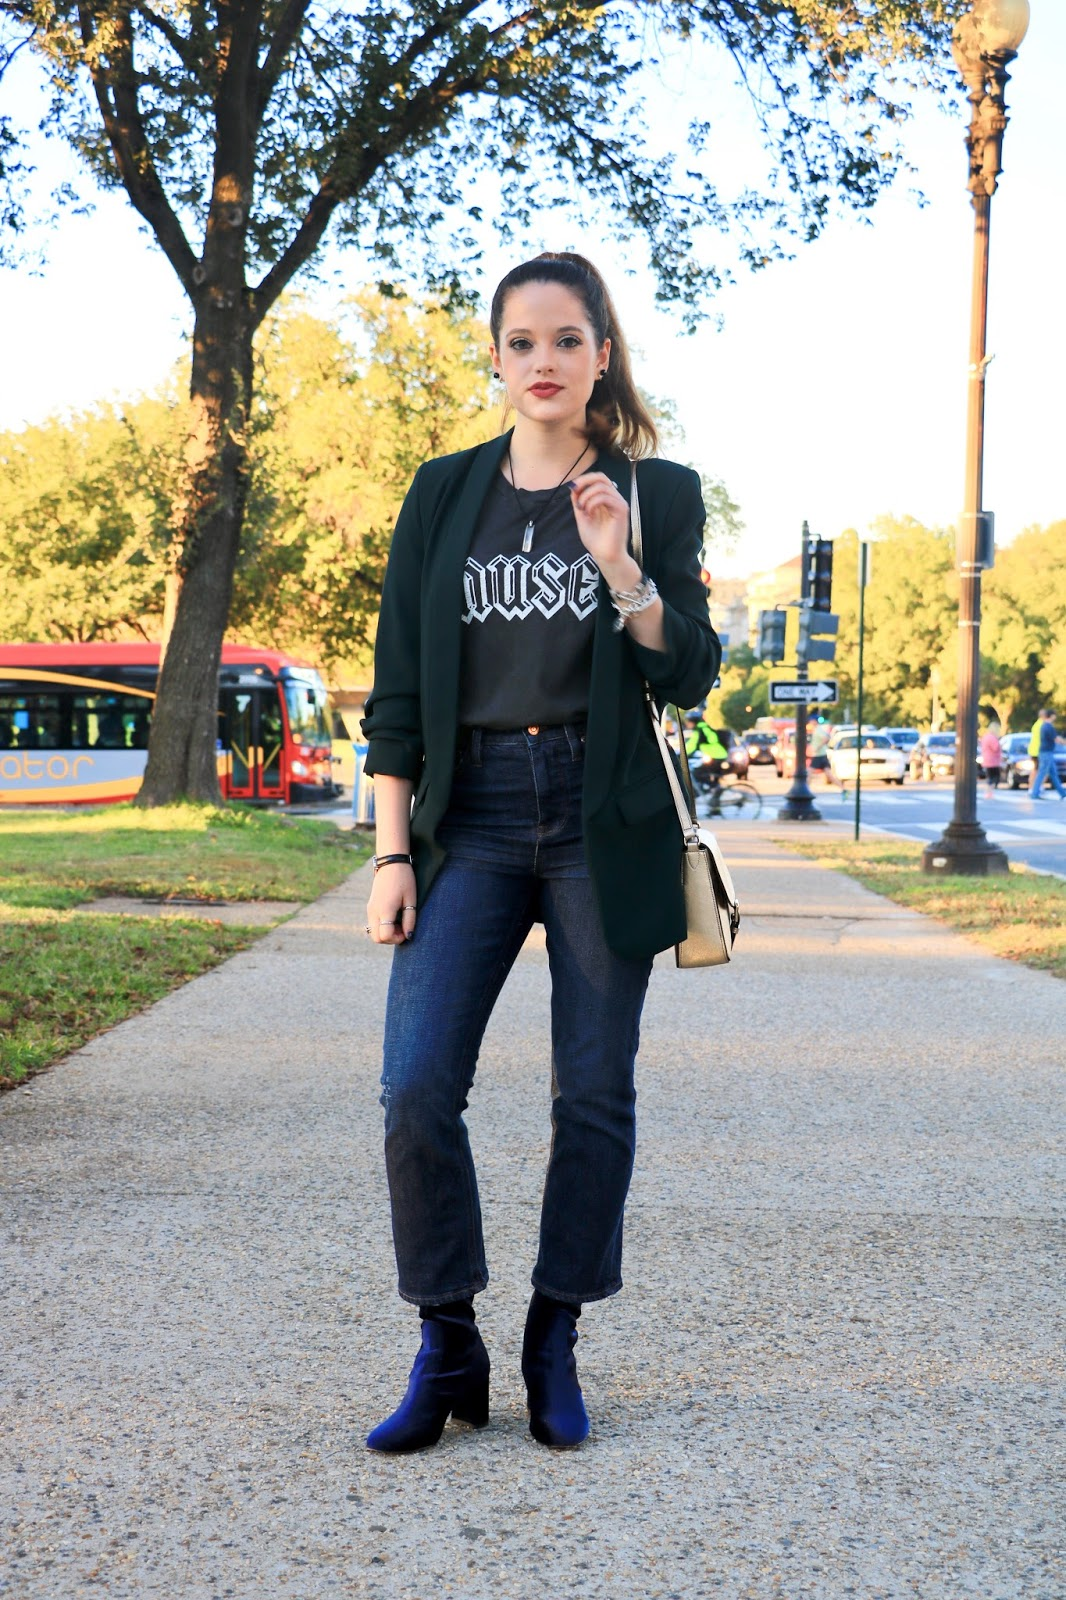 Nyc fashion blogger Kathleen Harper's fall outfits